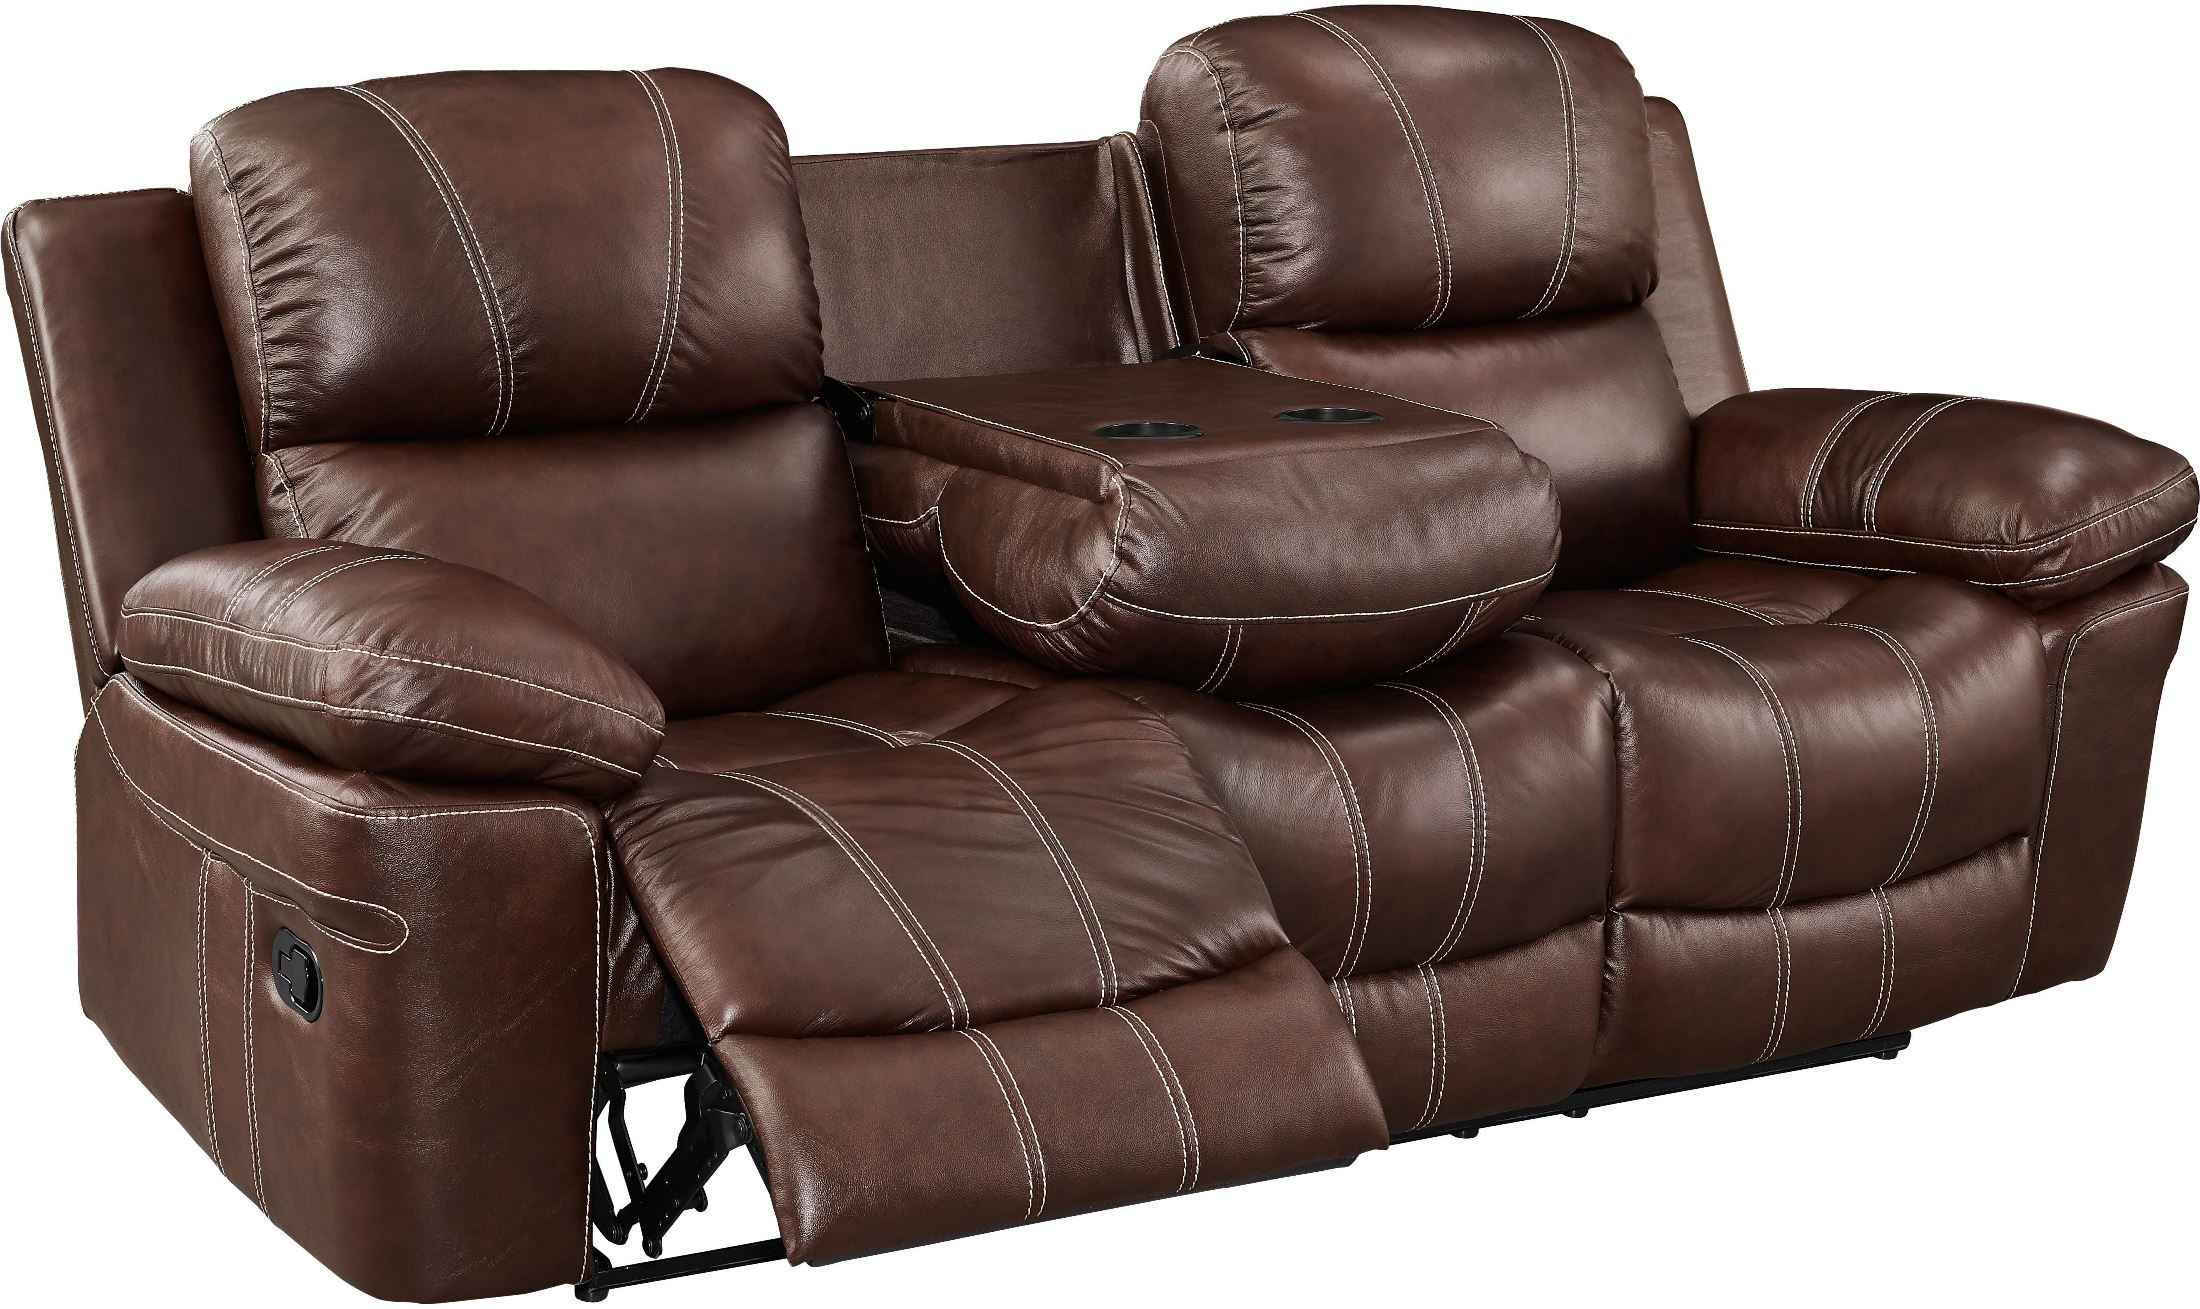 Legato Light Brown Dual Reclining Living Room Set from New Classic